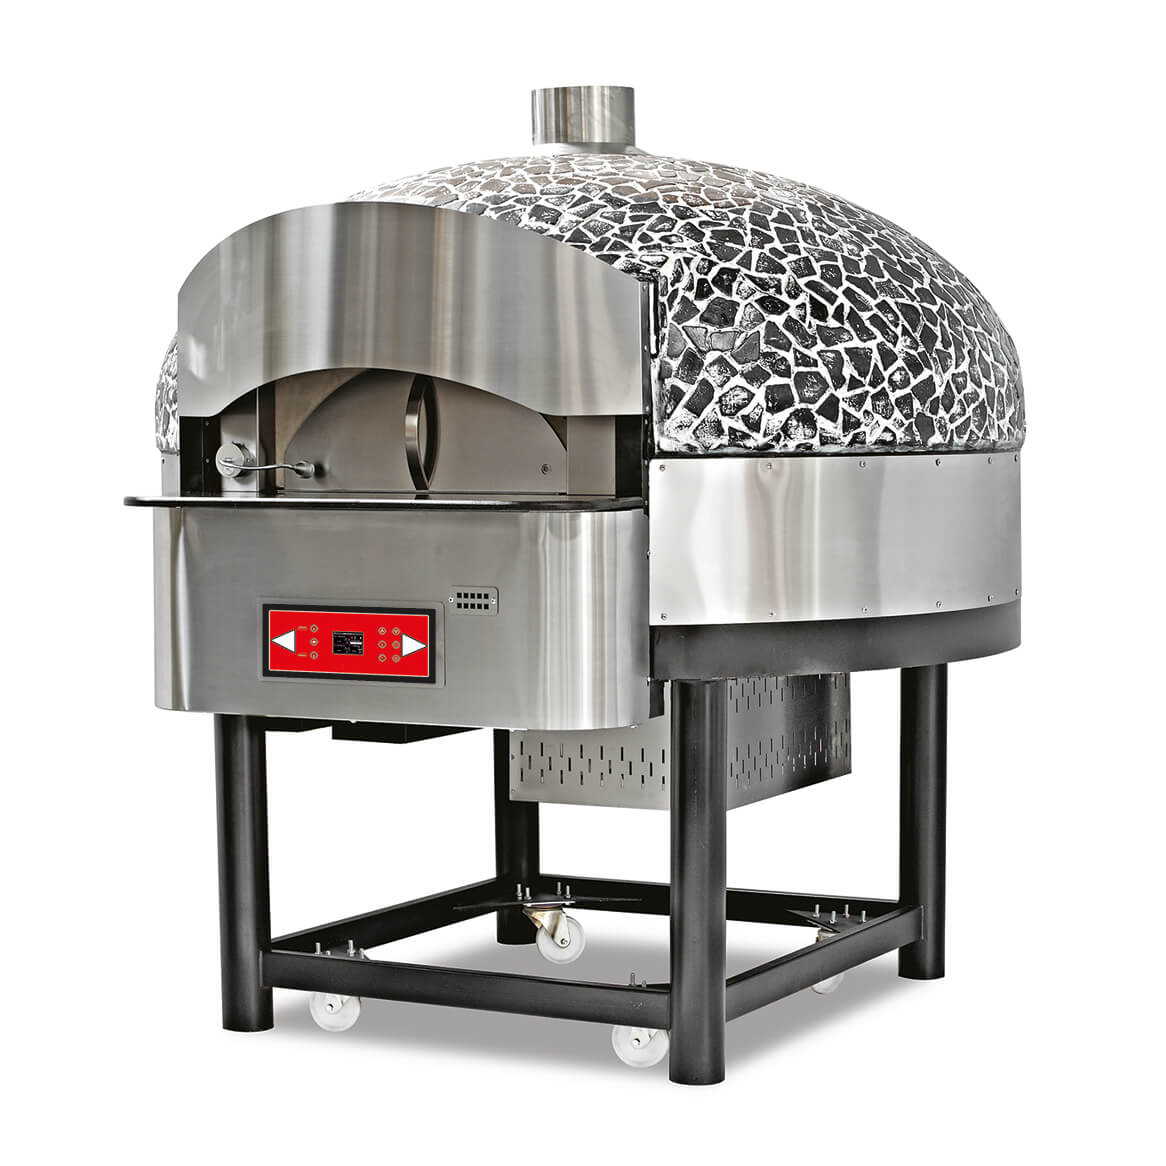 ROTATING GAS PIZZA OVEN (6 Pizzas)